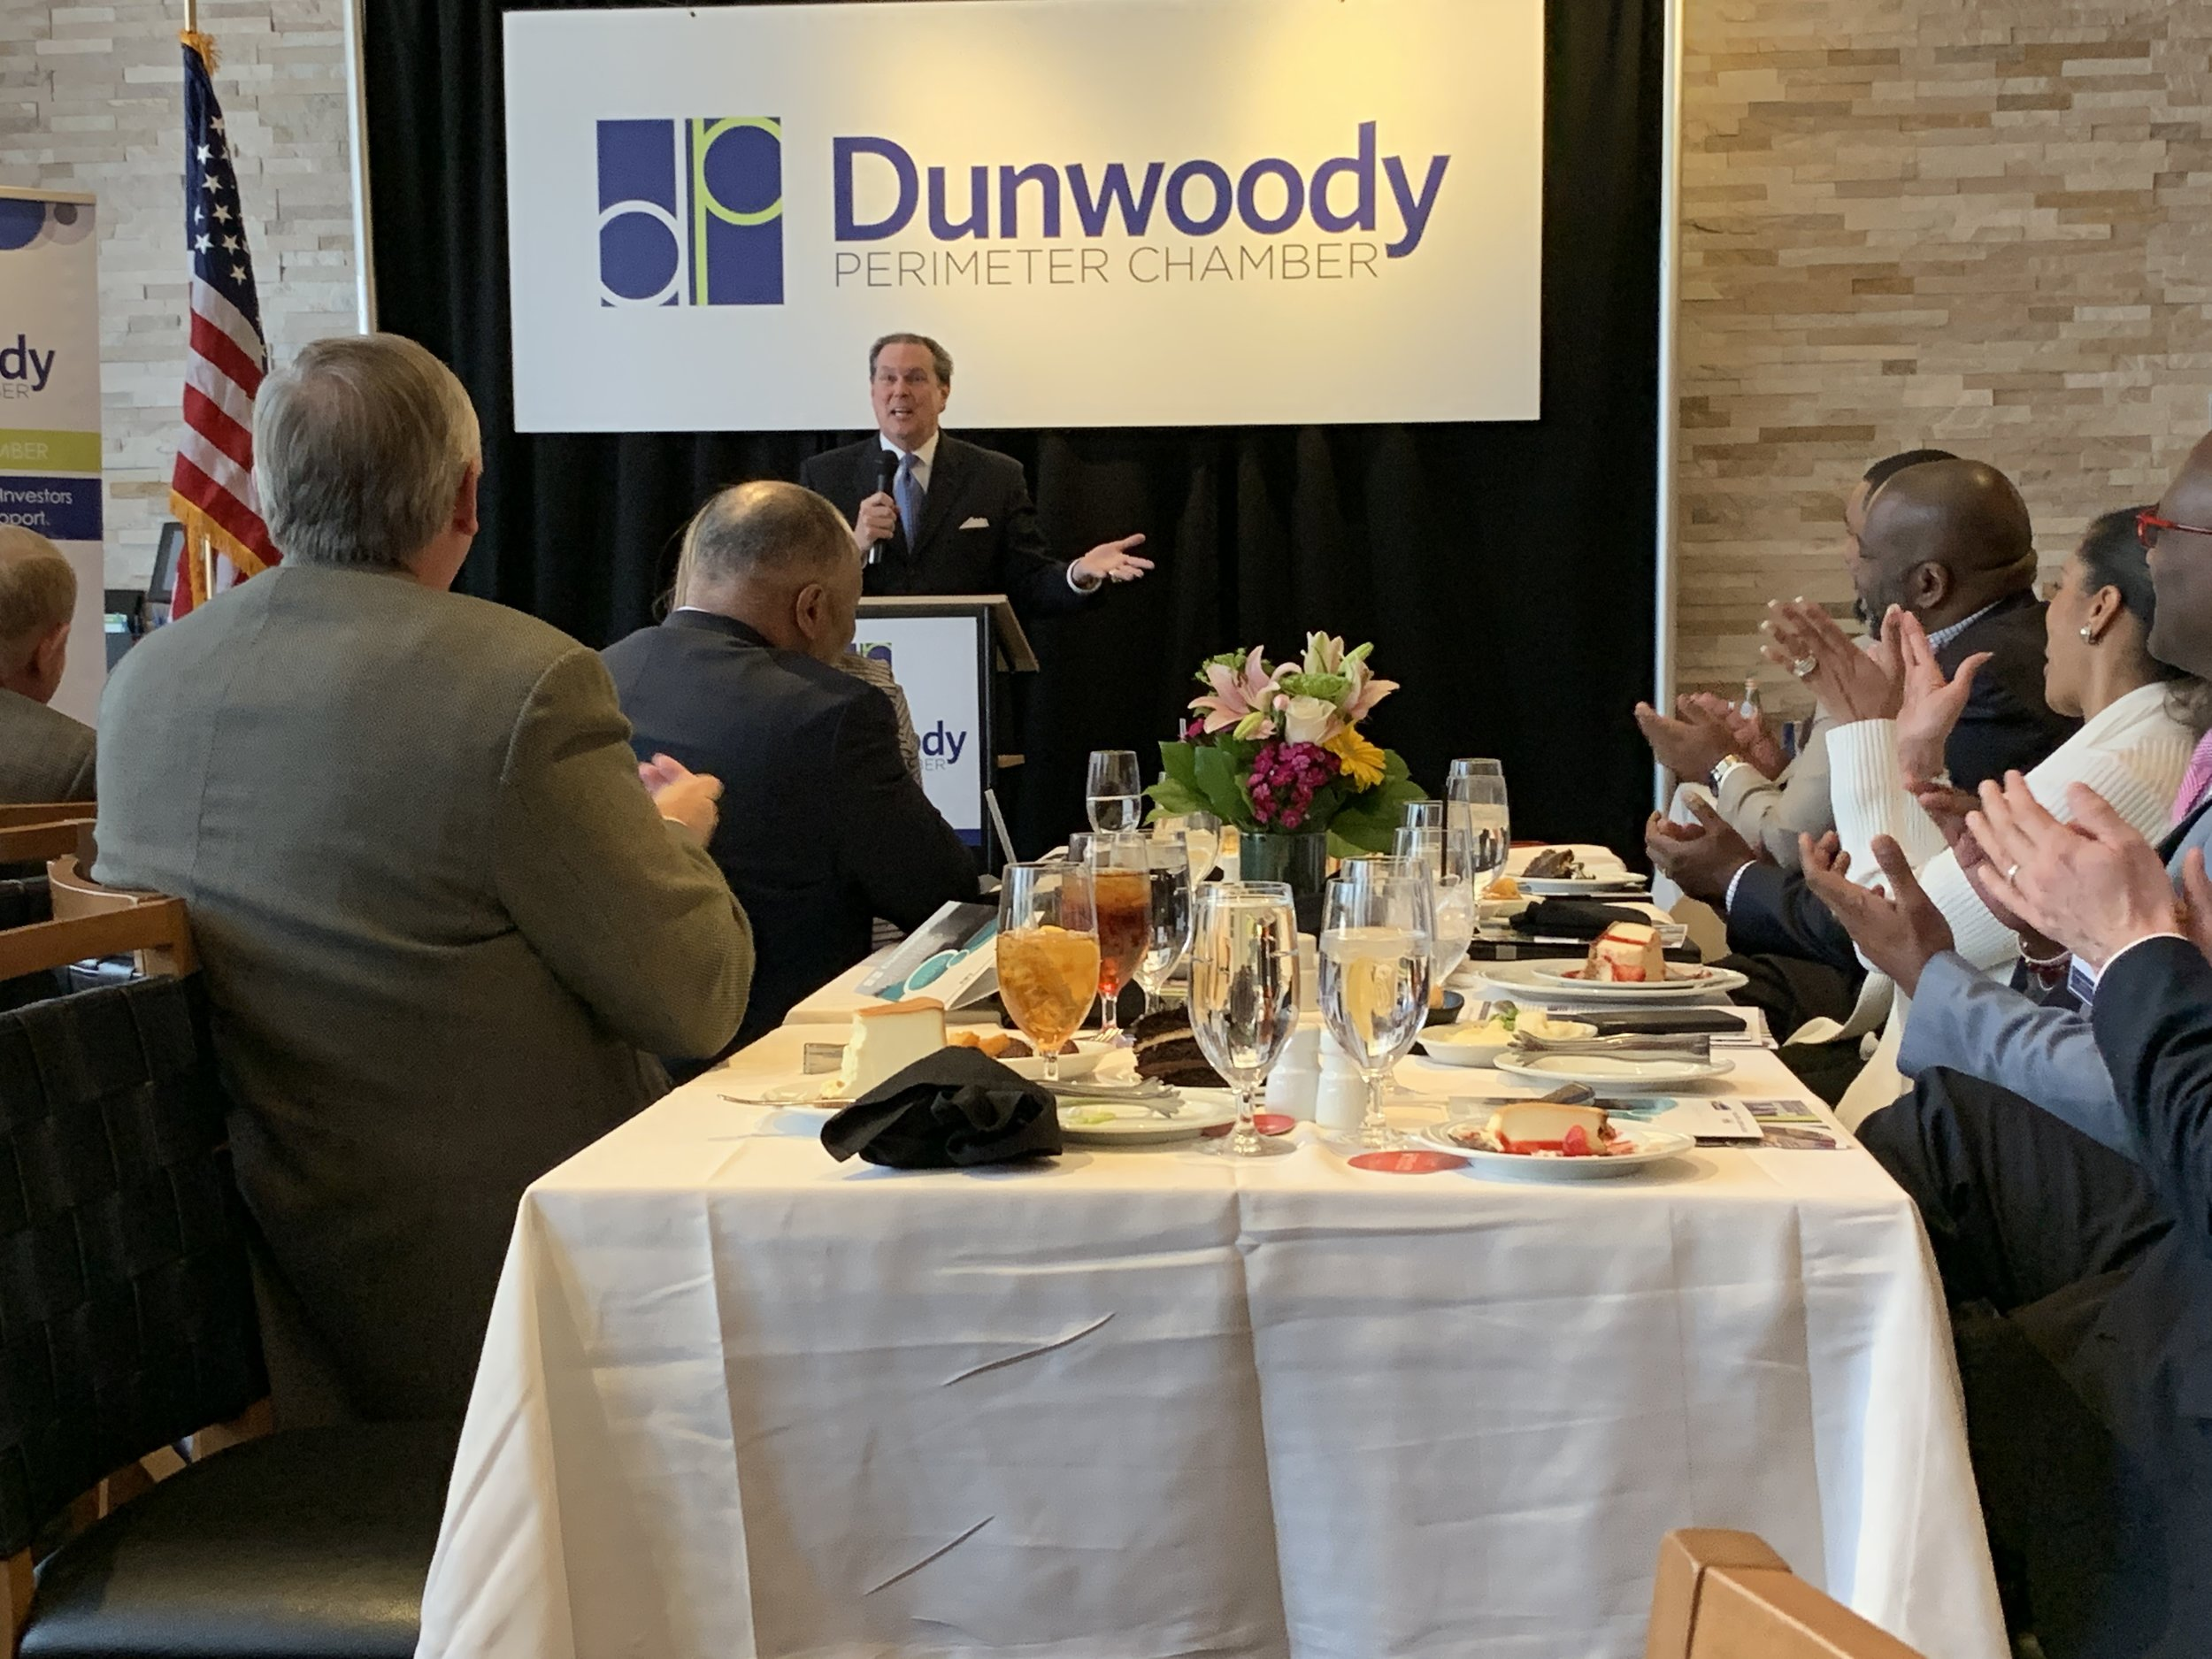 "Bob at the Dunwoody Perimeter Chamber - ""On behalf of the Dunwoody Perimeter Chamber, I would like to thank you for serving as our keynote speaker for our 2019 Annual Meeting on March 28, 2019. We greatly appreciate the time you took from your busy schedule to prepare and deliver such a dynamic and motivating keynote address!""Brittney Hardweare -Events Coordinator"